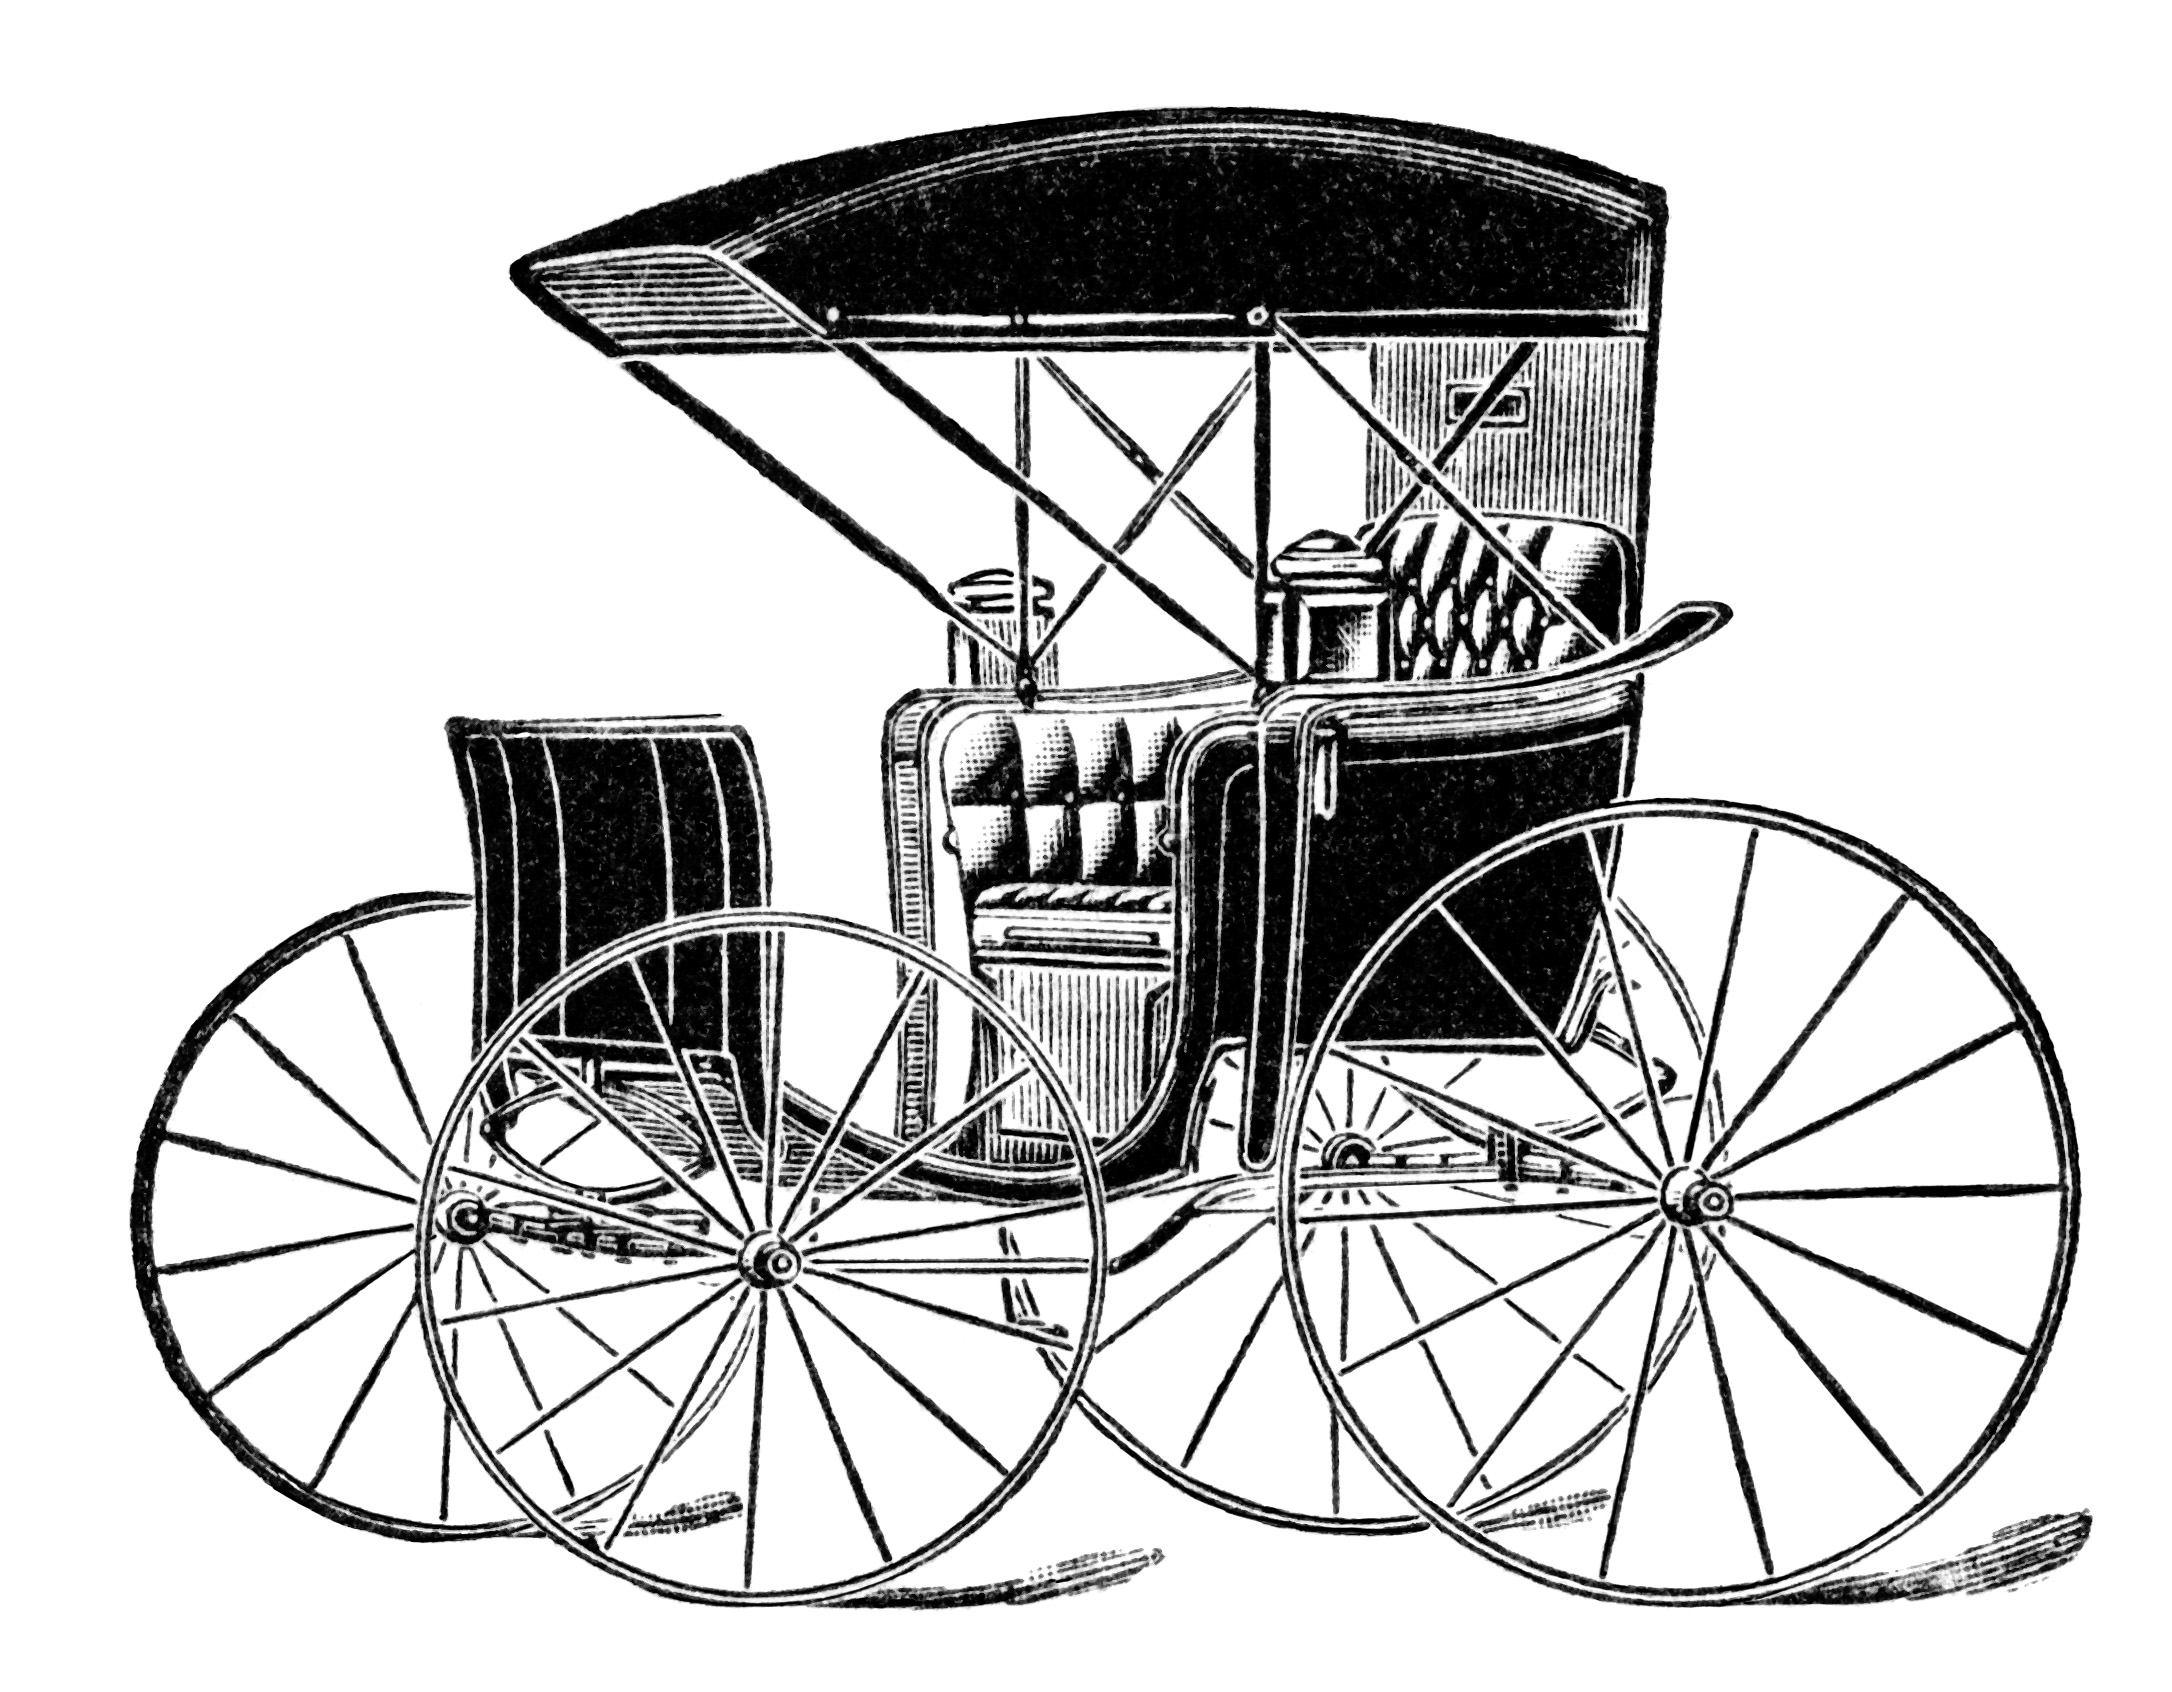 Drawn vehicle nice car Drawn carriage black white white